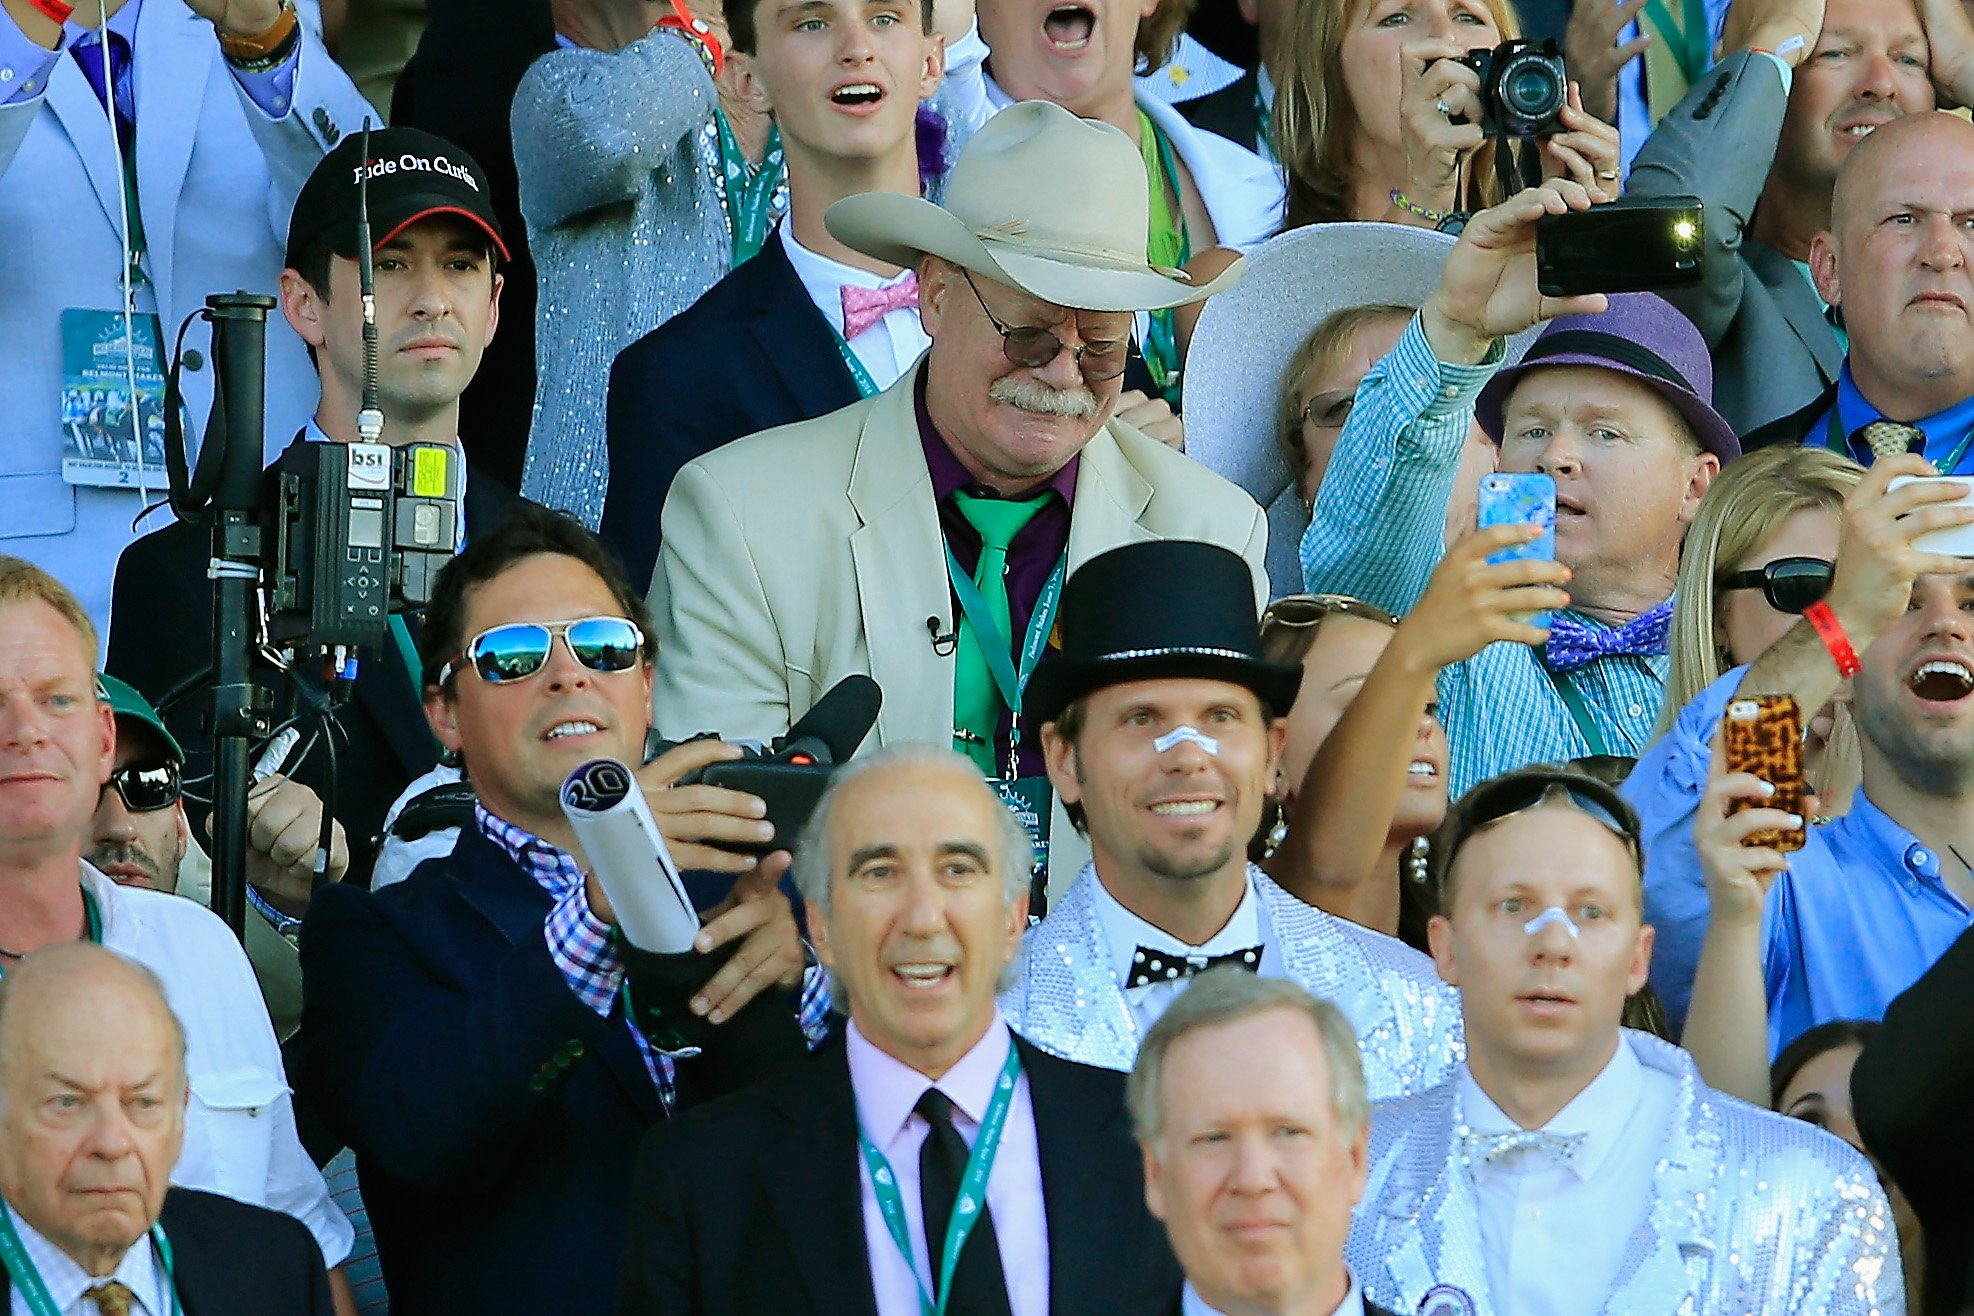 Steve Coburn, co-owner of California Chrome reacts while watching the 146th running of the Belmont Stakes at Belmont Park on June 7, 2014 in Elmont, New York.